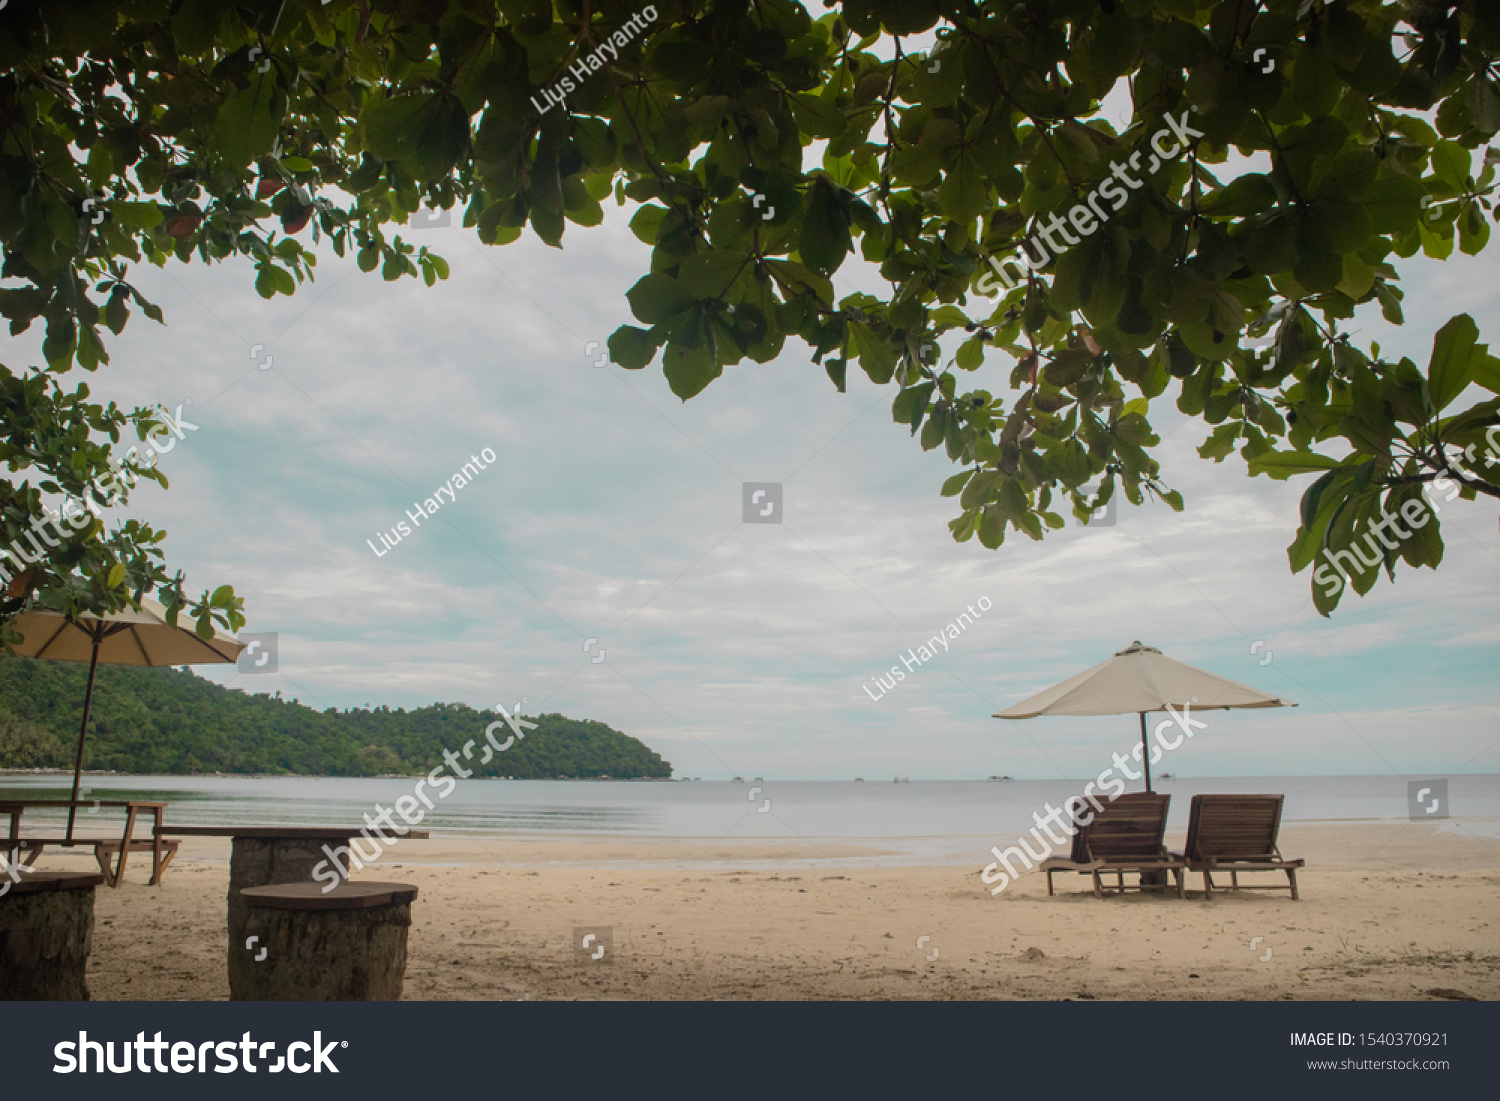 Chairs and umbrella at beautiful beach #1540370921